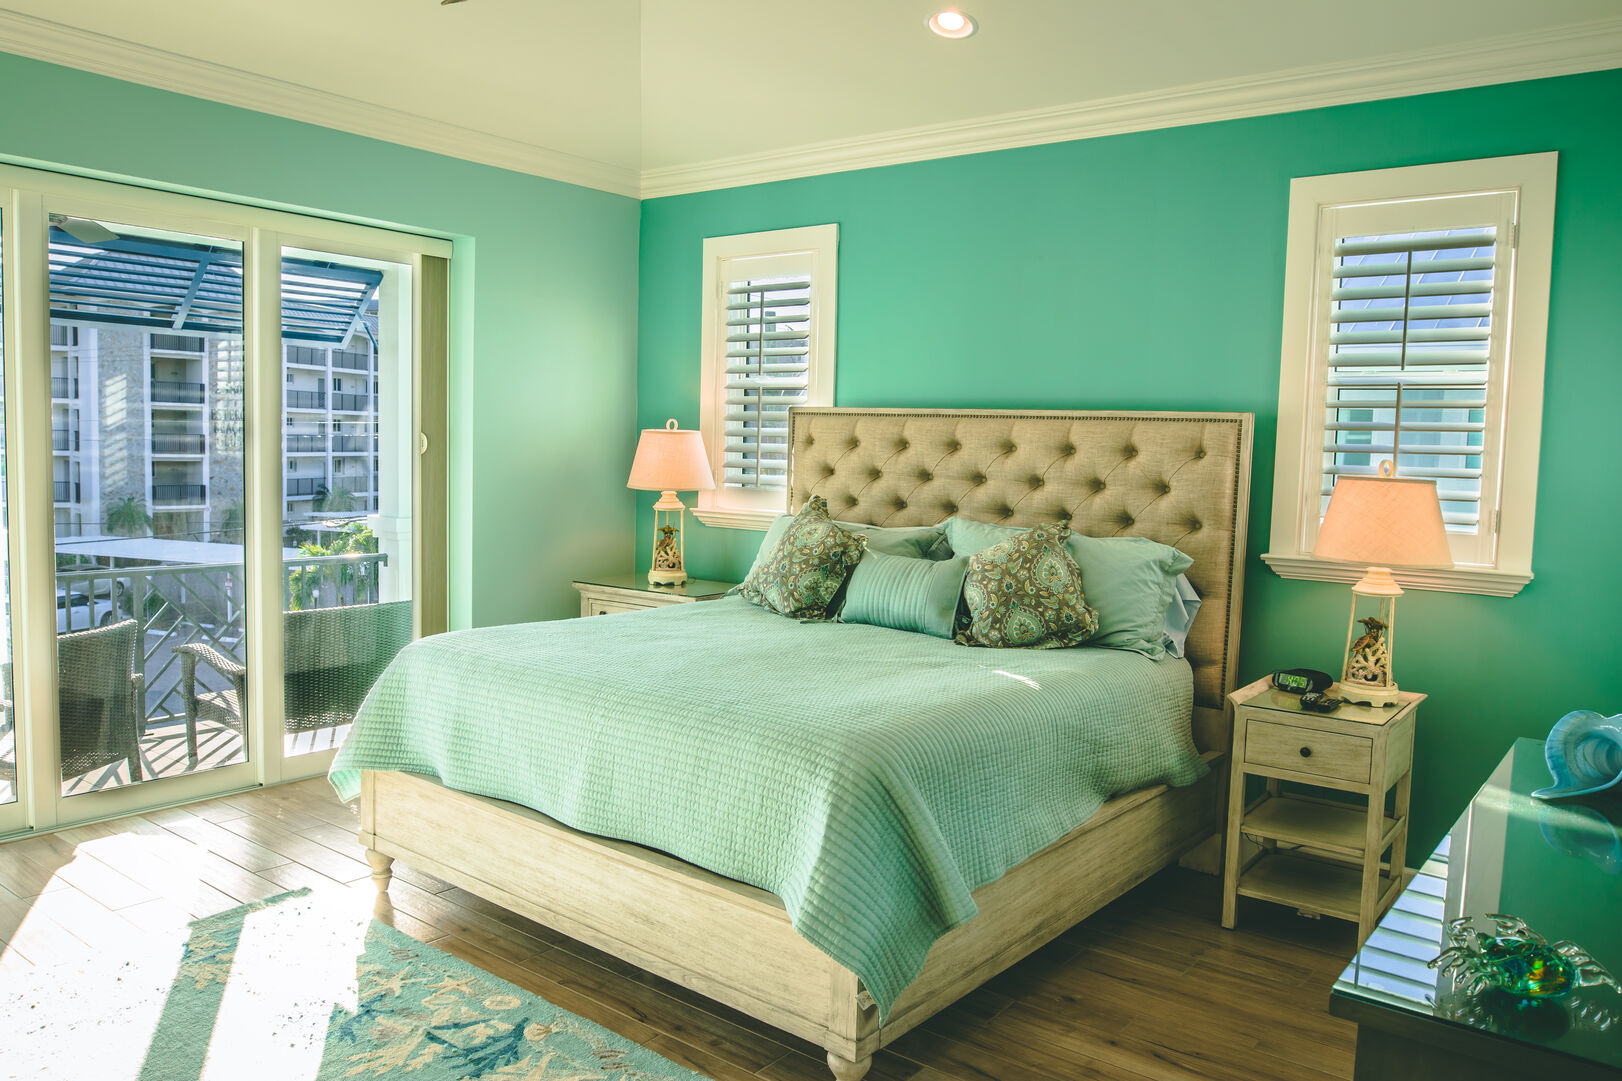 Green bedroom with large bed (also green), and twin nightstands, in front of a sliding glass door.